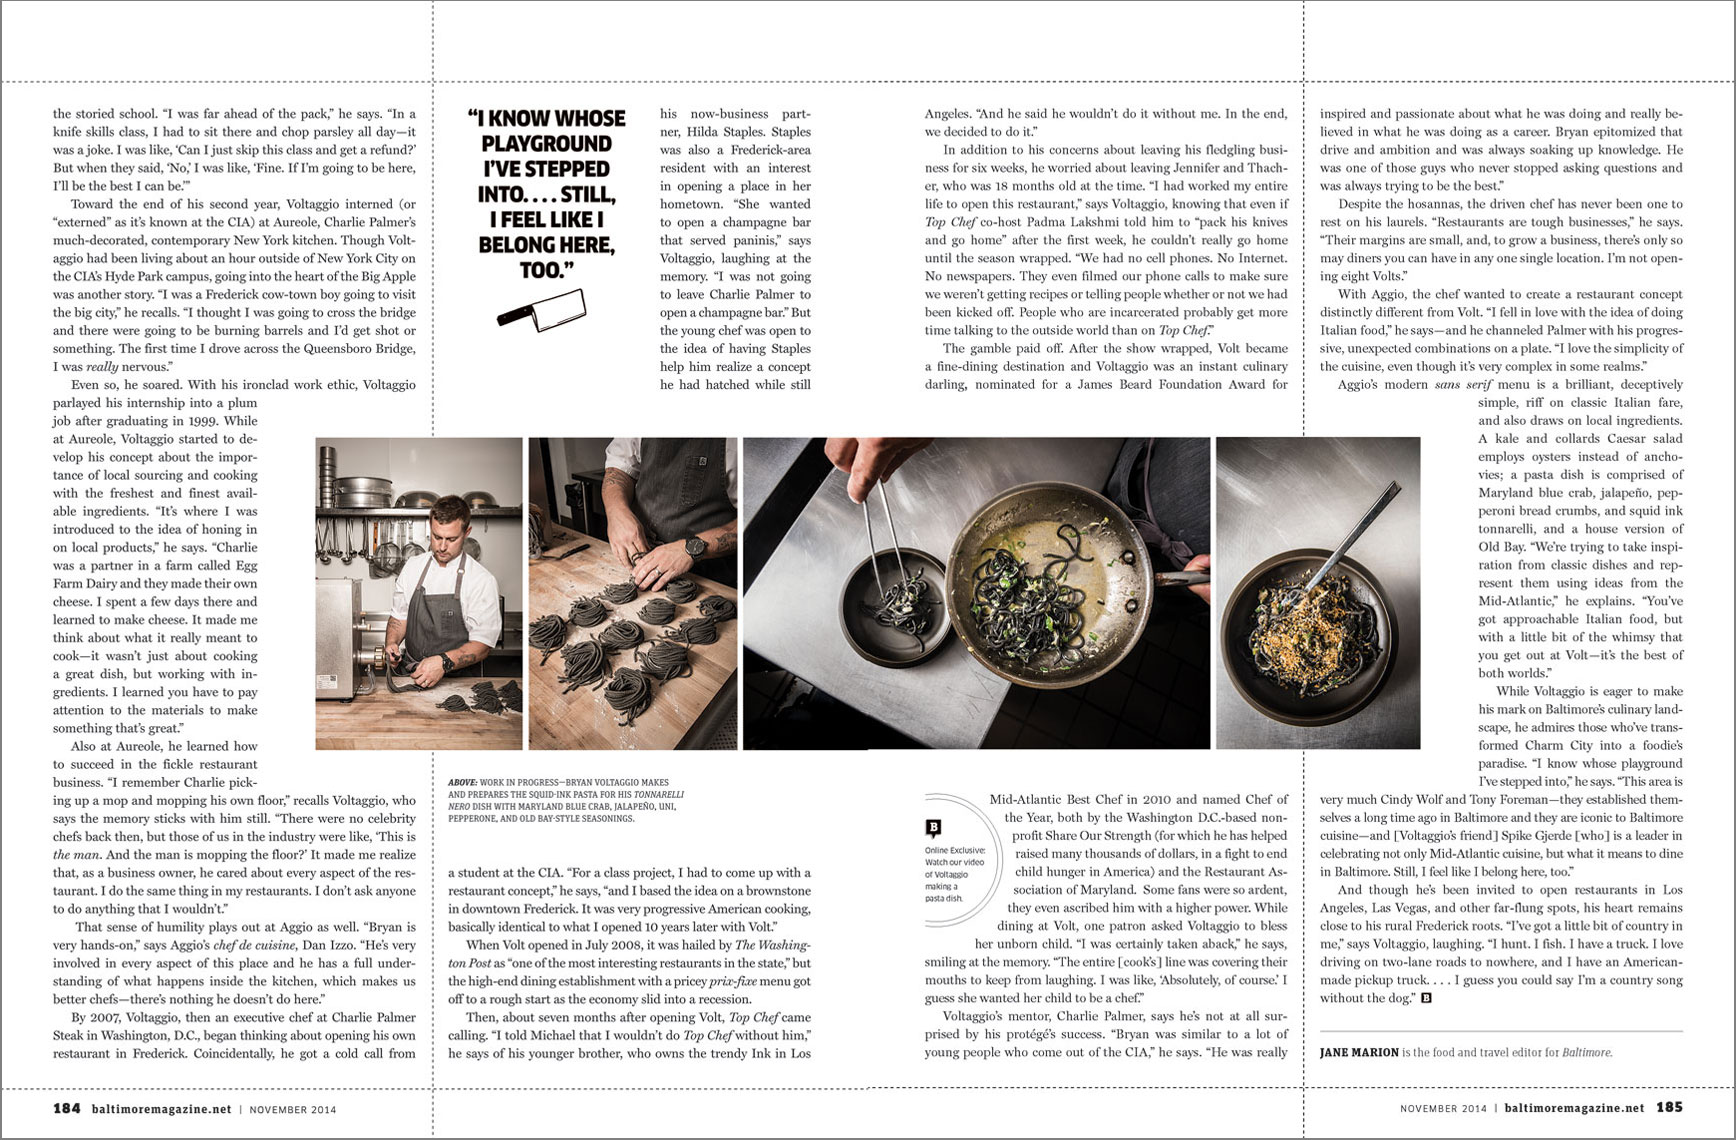 Baltimore Magazine spread featuring chef Bryan Voltaggio